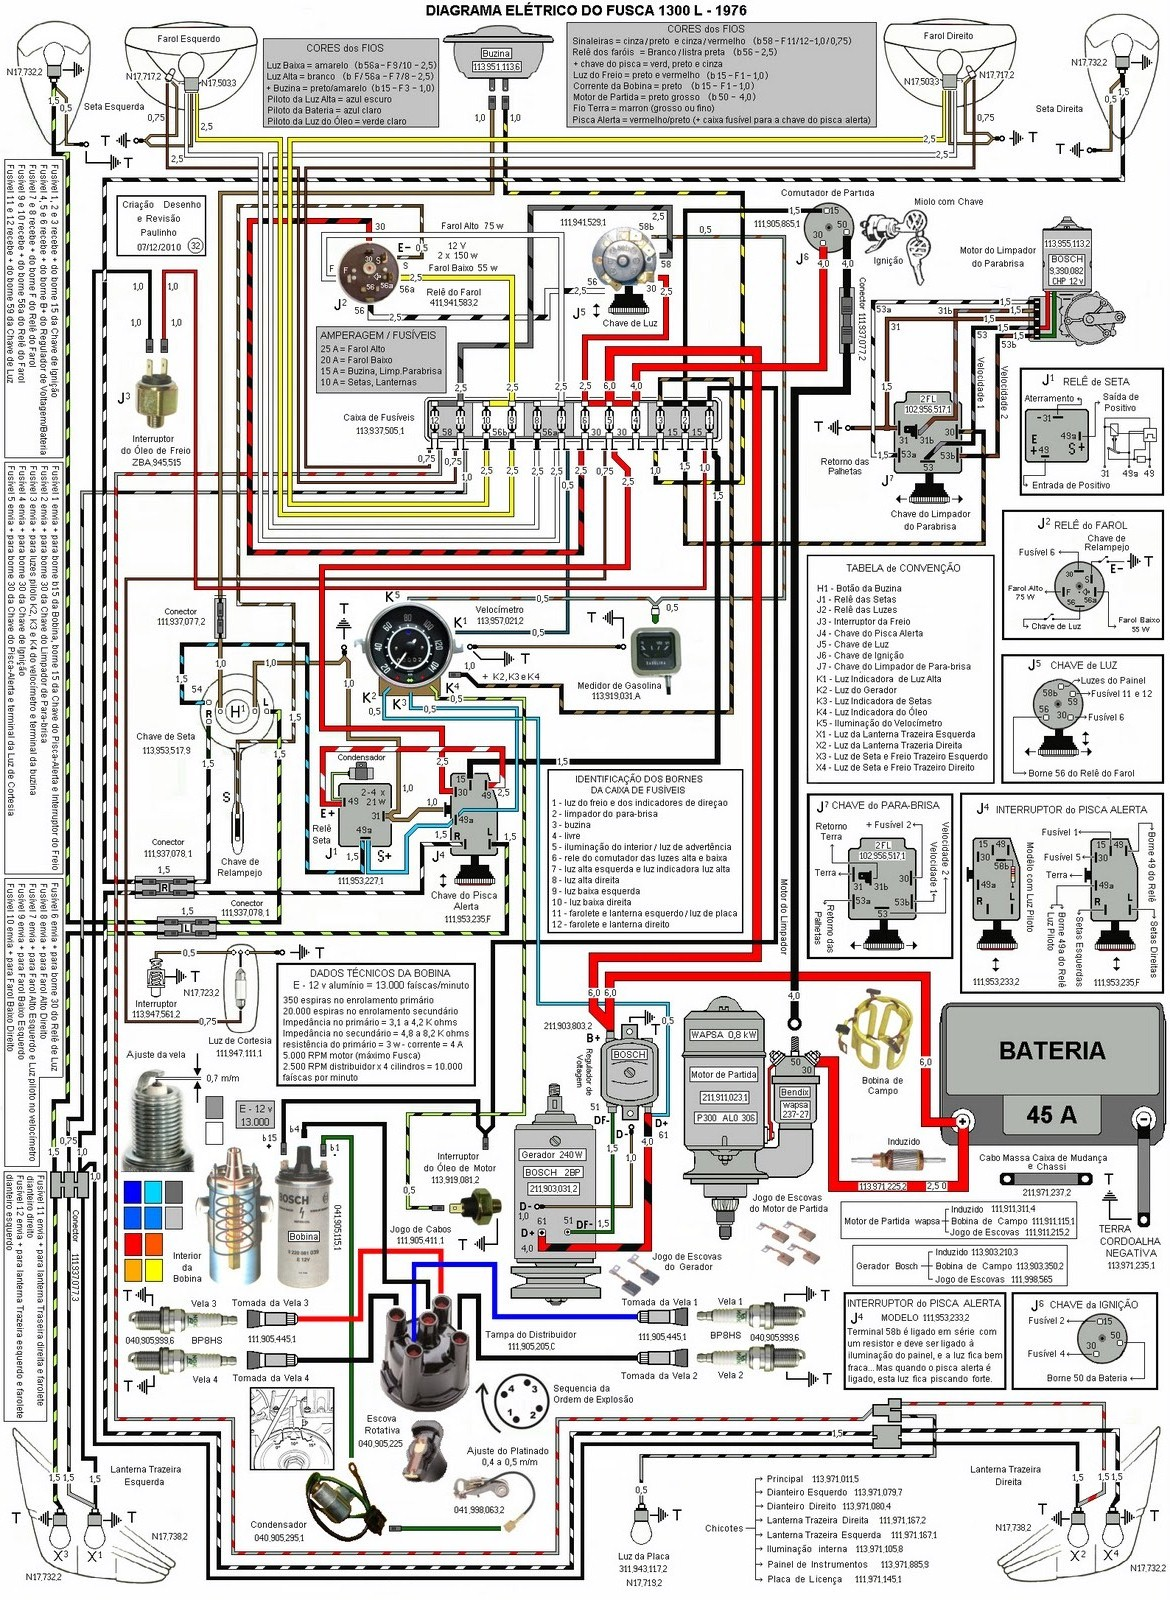 Watch together with 1972 Vw Super Beetle Fuse Box Wiring Diagram also 04 BASICS Spark Plug Replacement also Wiringt2 also Porsche boxster parts. on porsche 914 wiring diagram